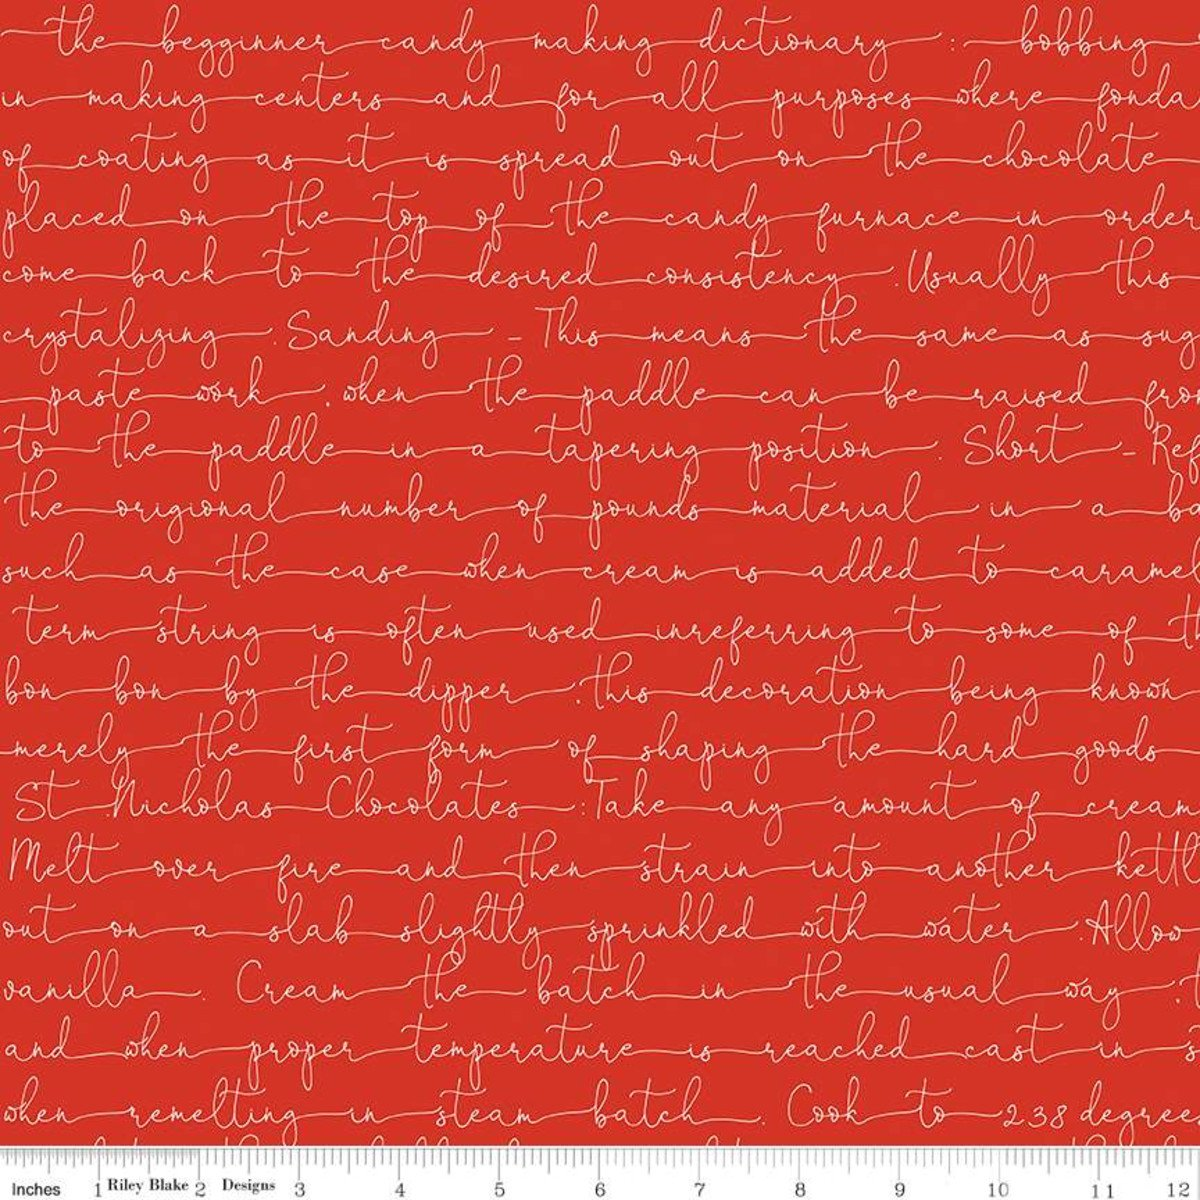 Snow Sweet CANDY MAKING TEXT RED Fat Quarters 18 x 22 in